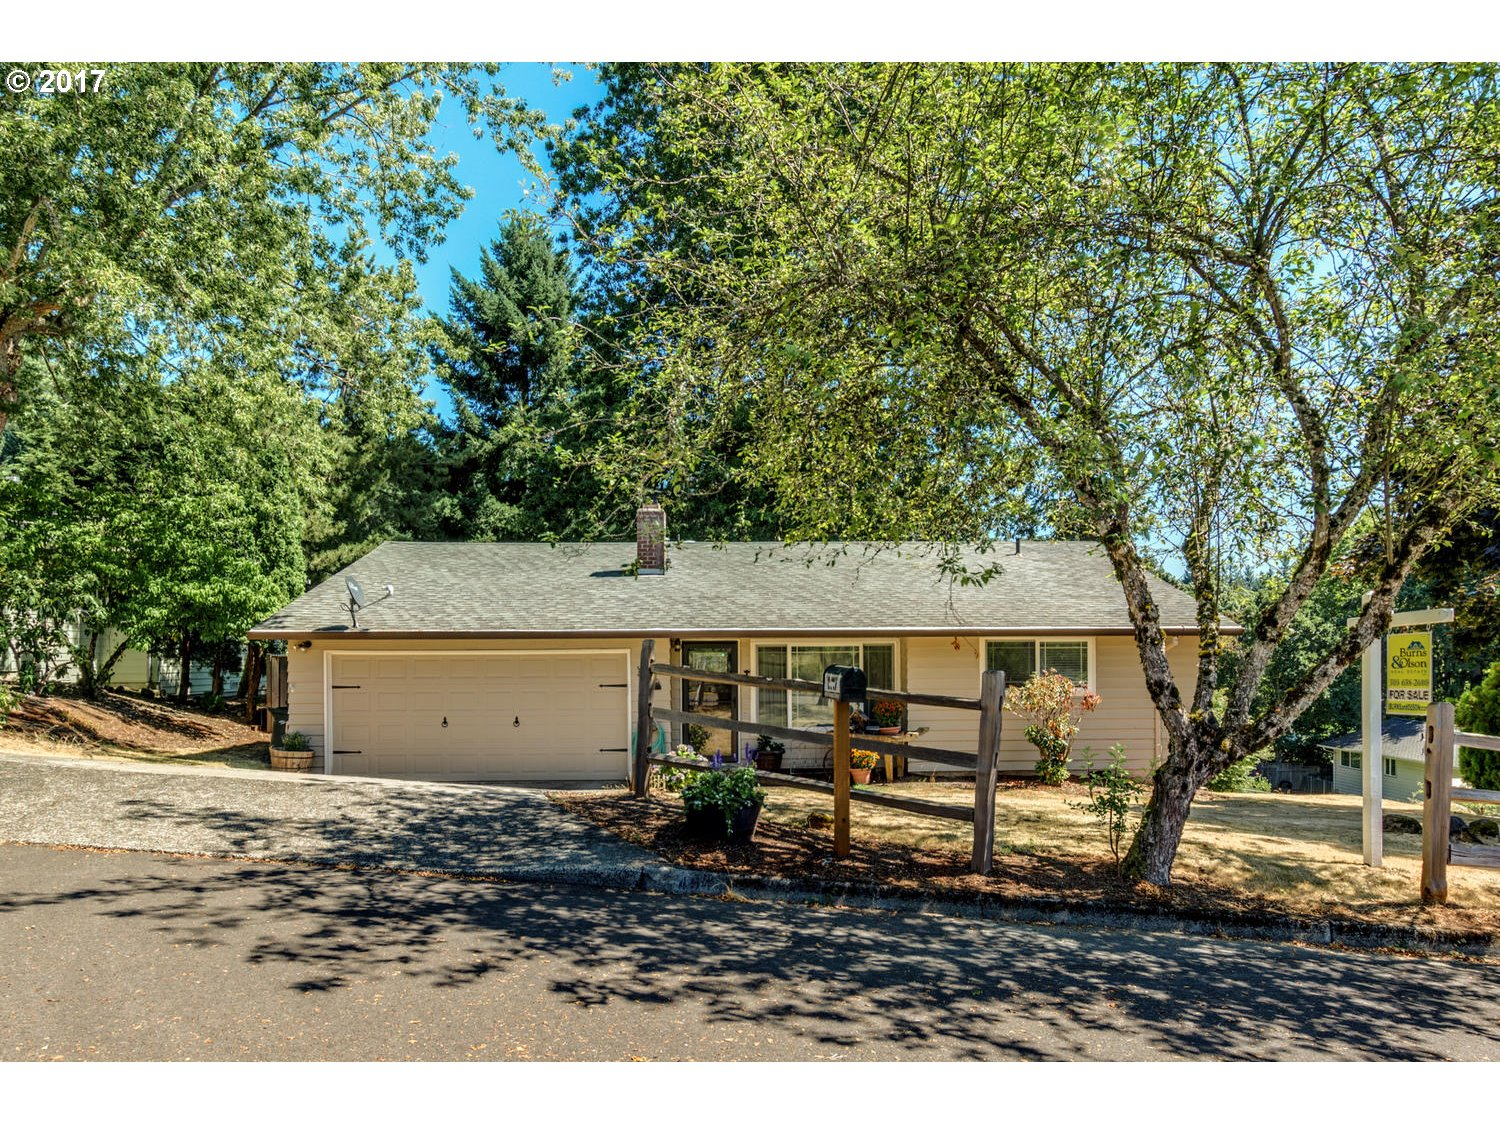 4965 BONNET DR, West Linn, OR 97068